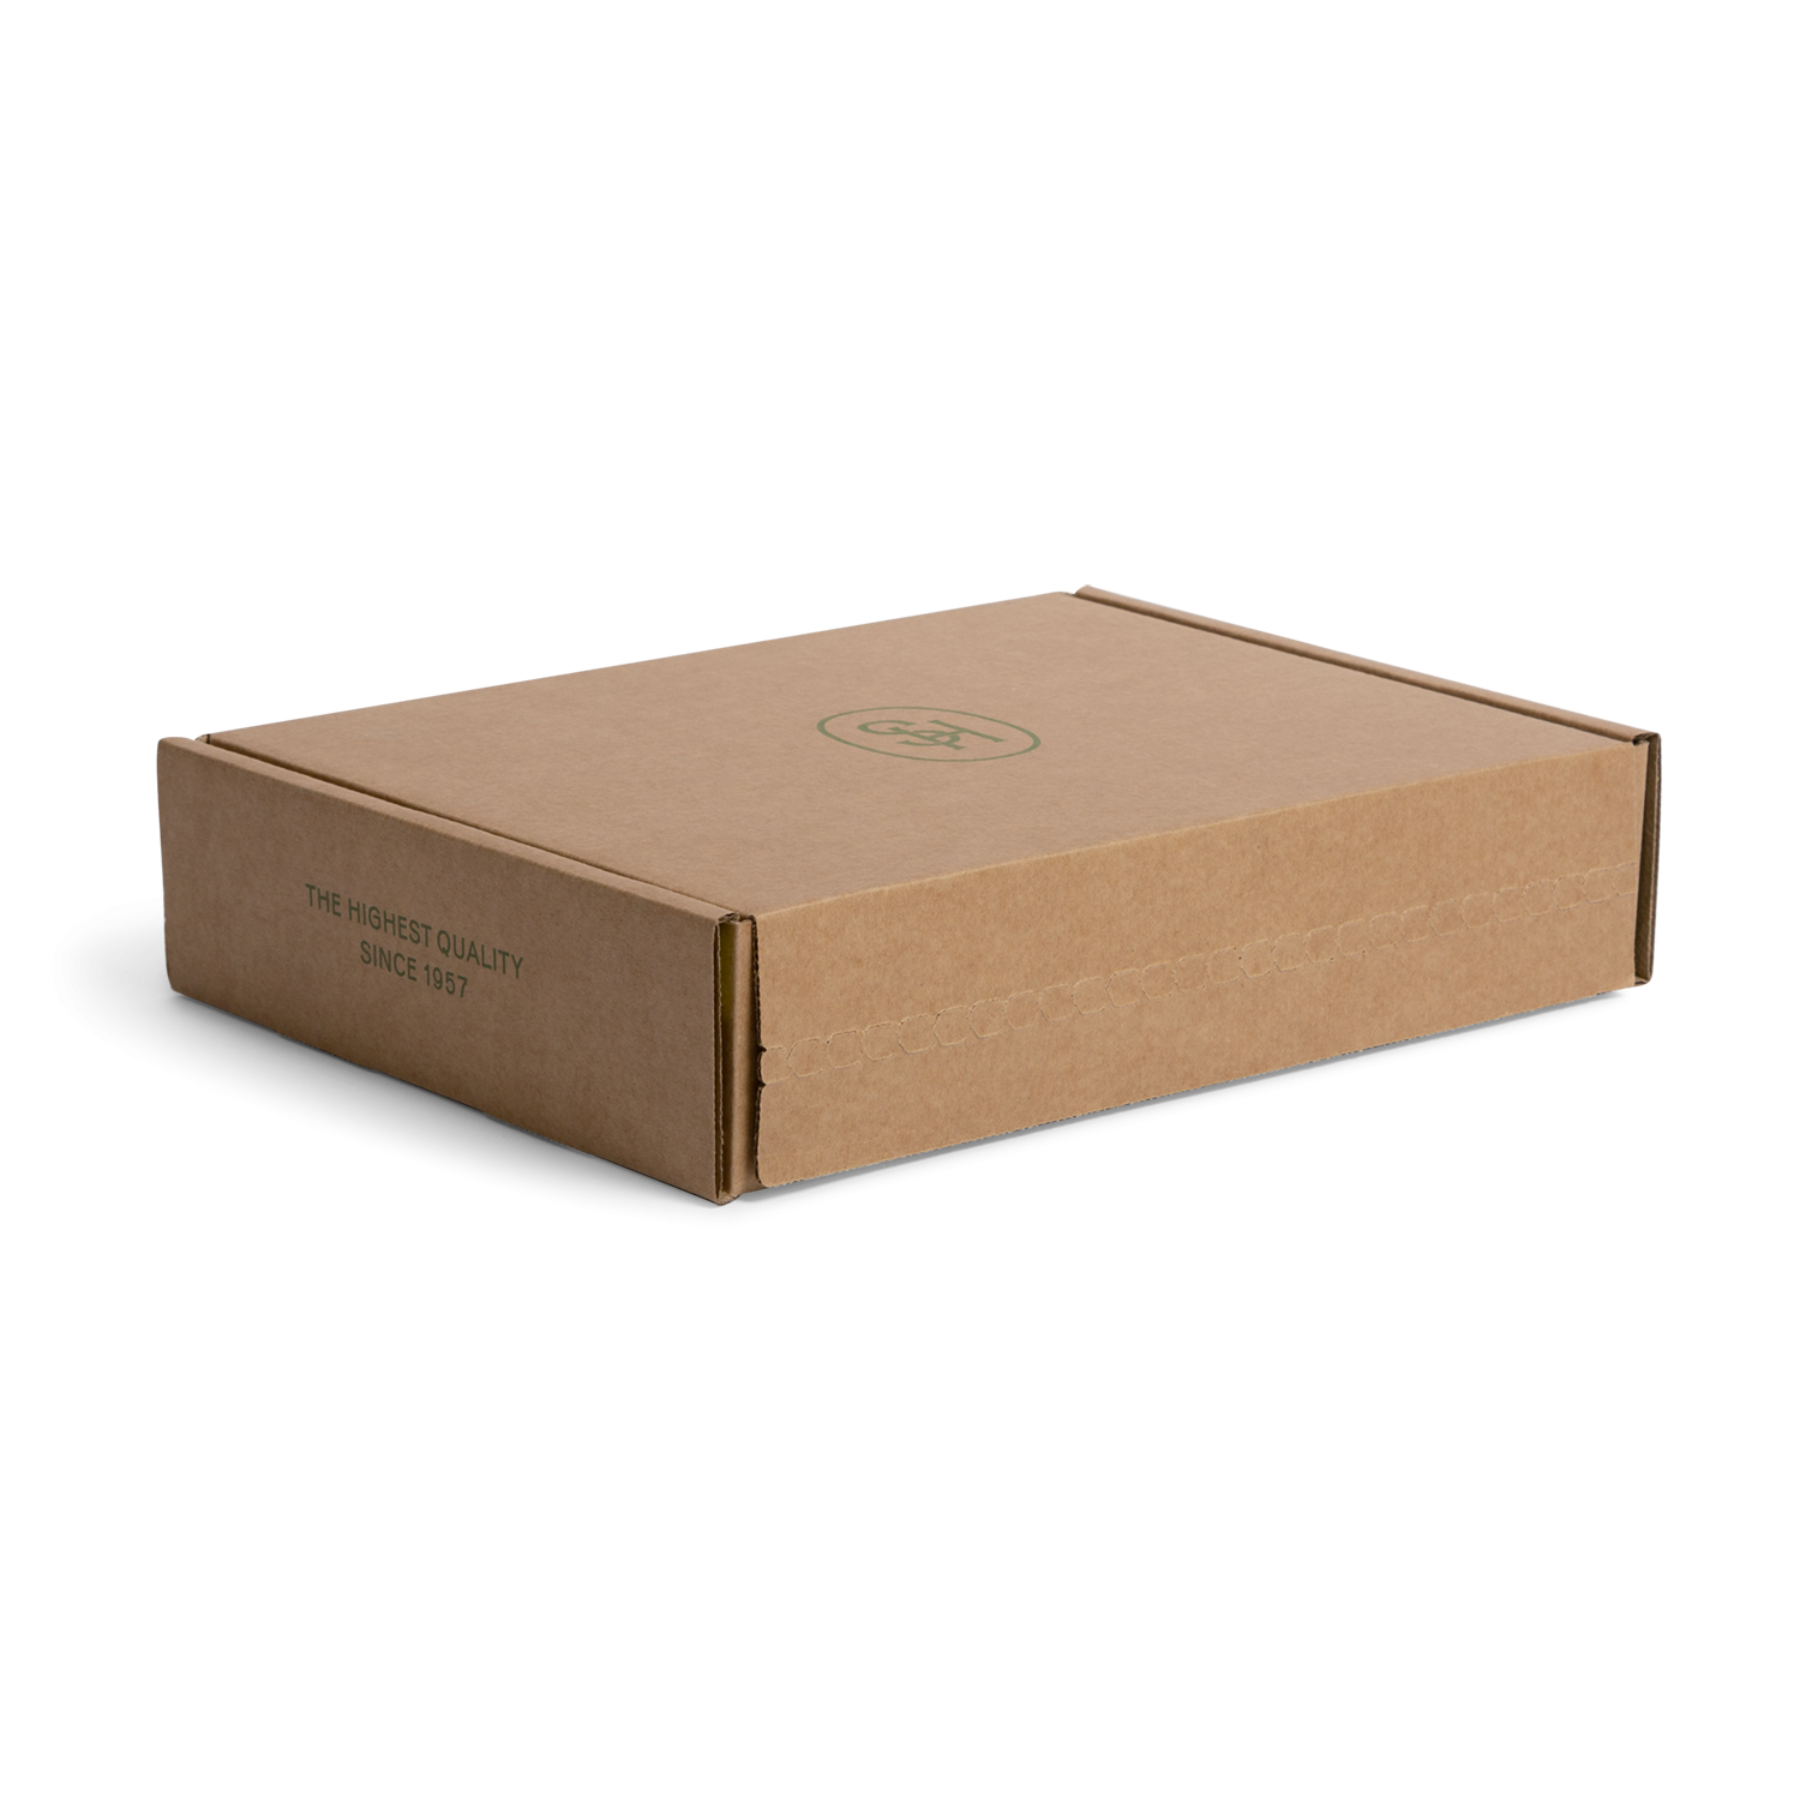 The Spice House uses Lumi to produce mailer boxes with a tear strip and adhesive strip Packaging Strategies for Efficient Returns